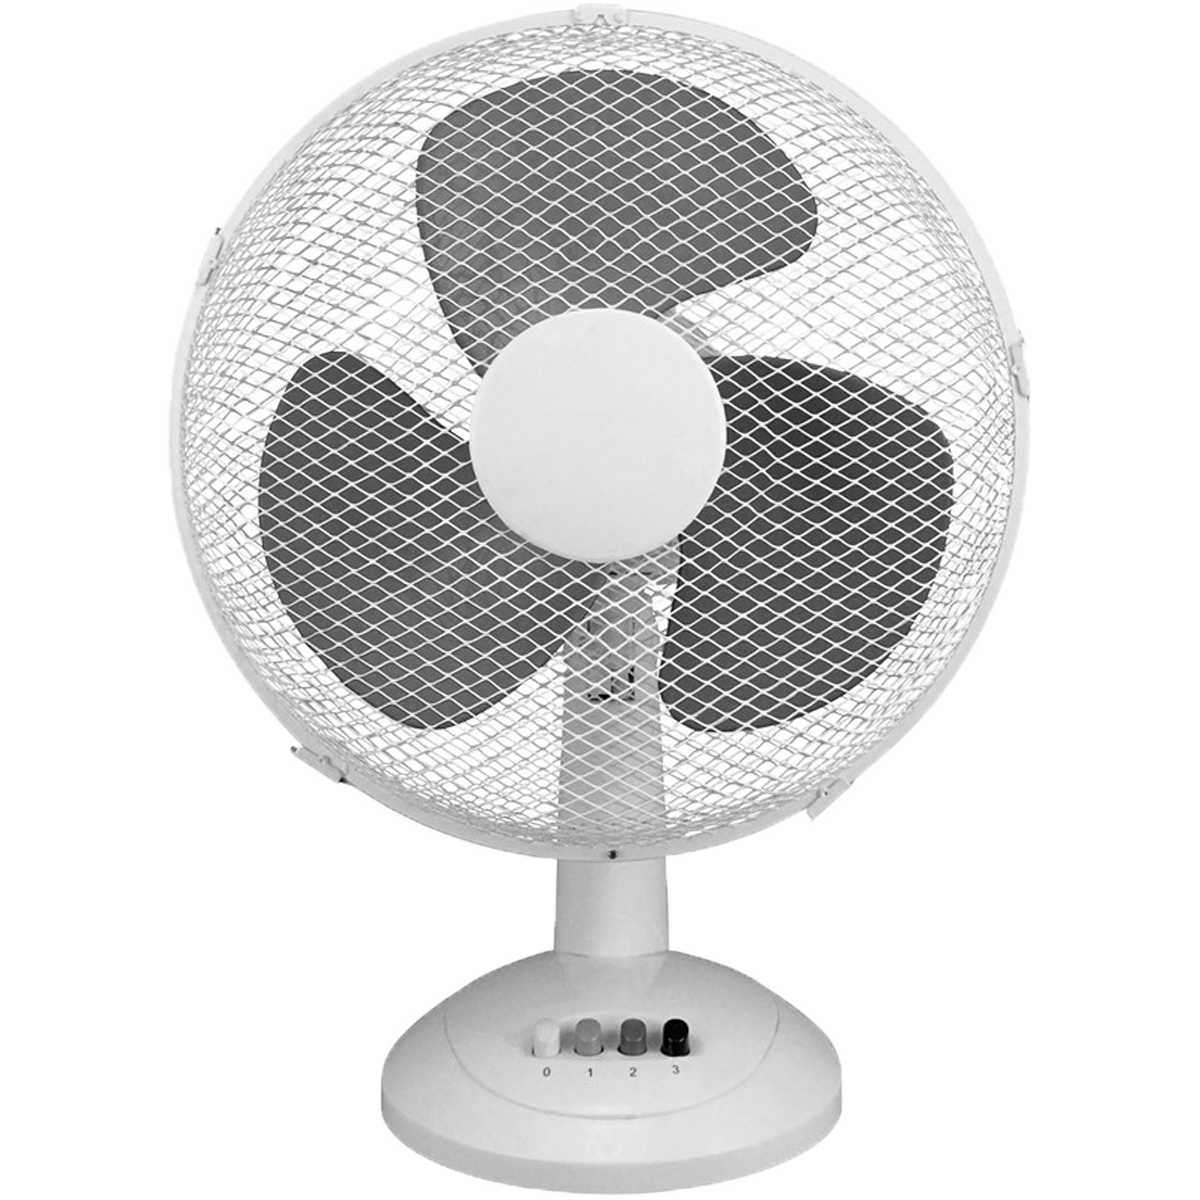 STAY COOL - GOOD CHOICE OF DESK FANS